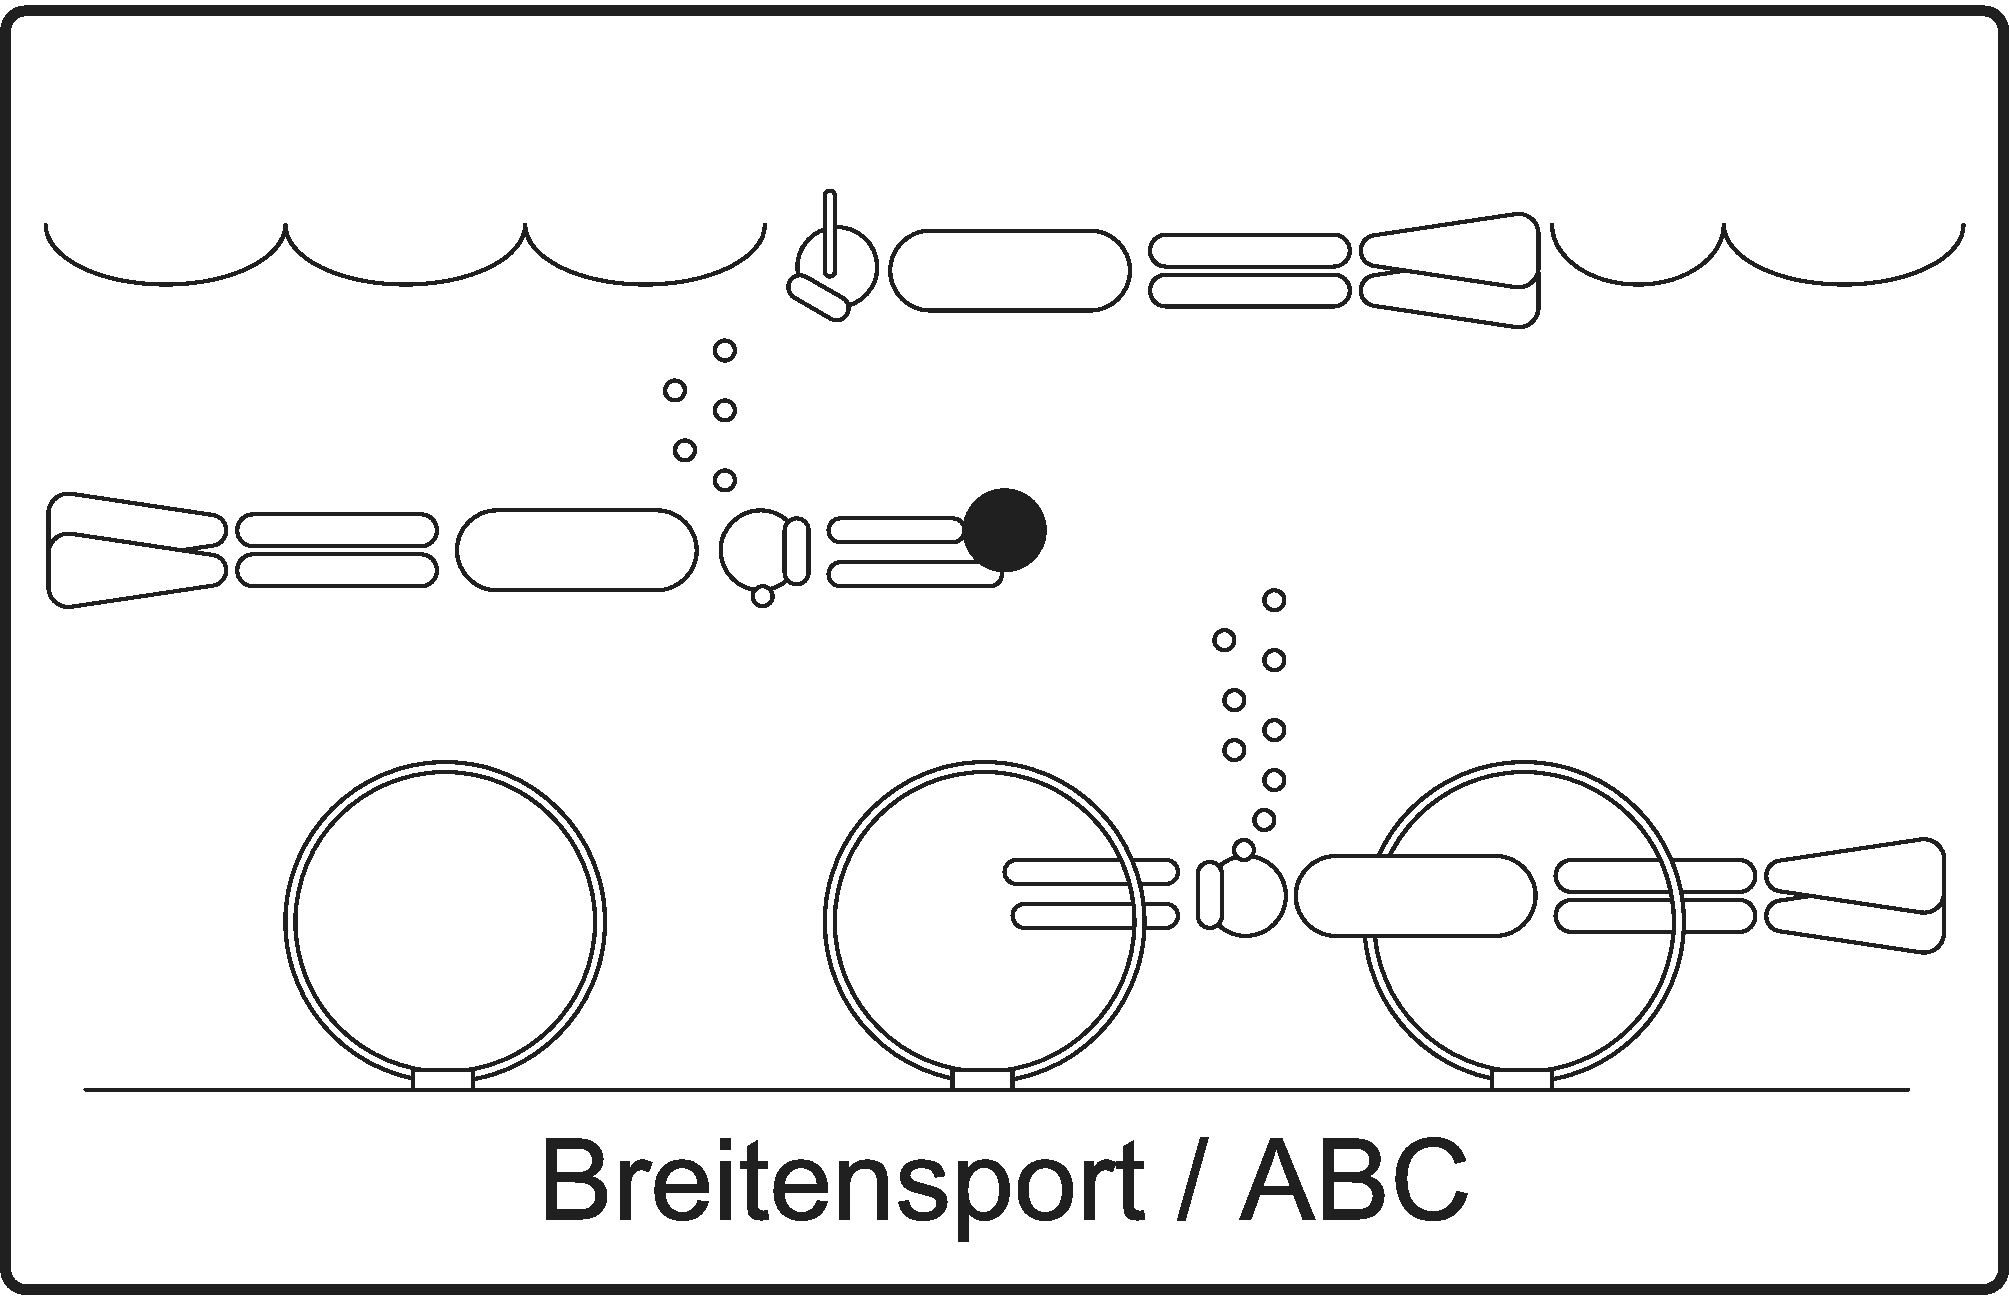 Breitensport/ABC